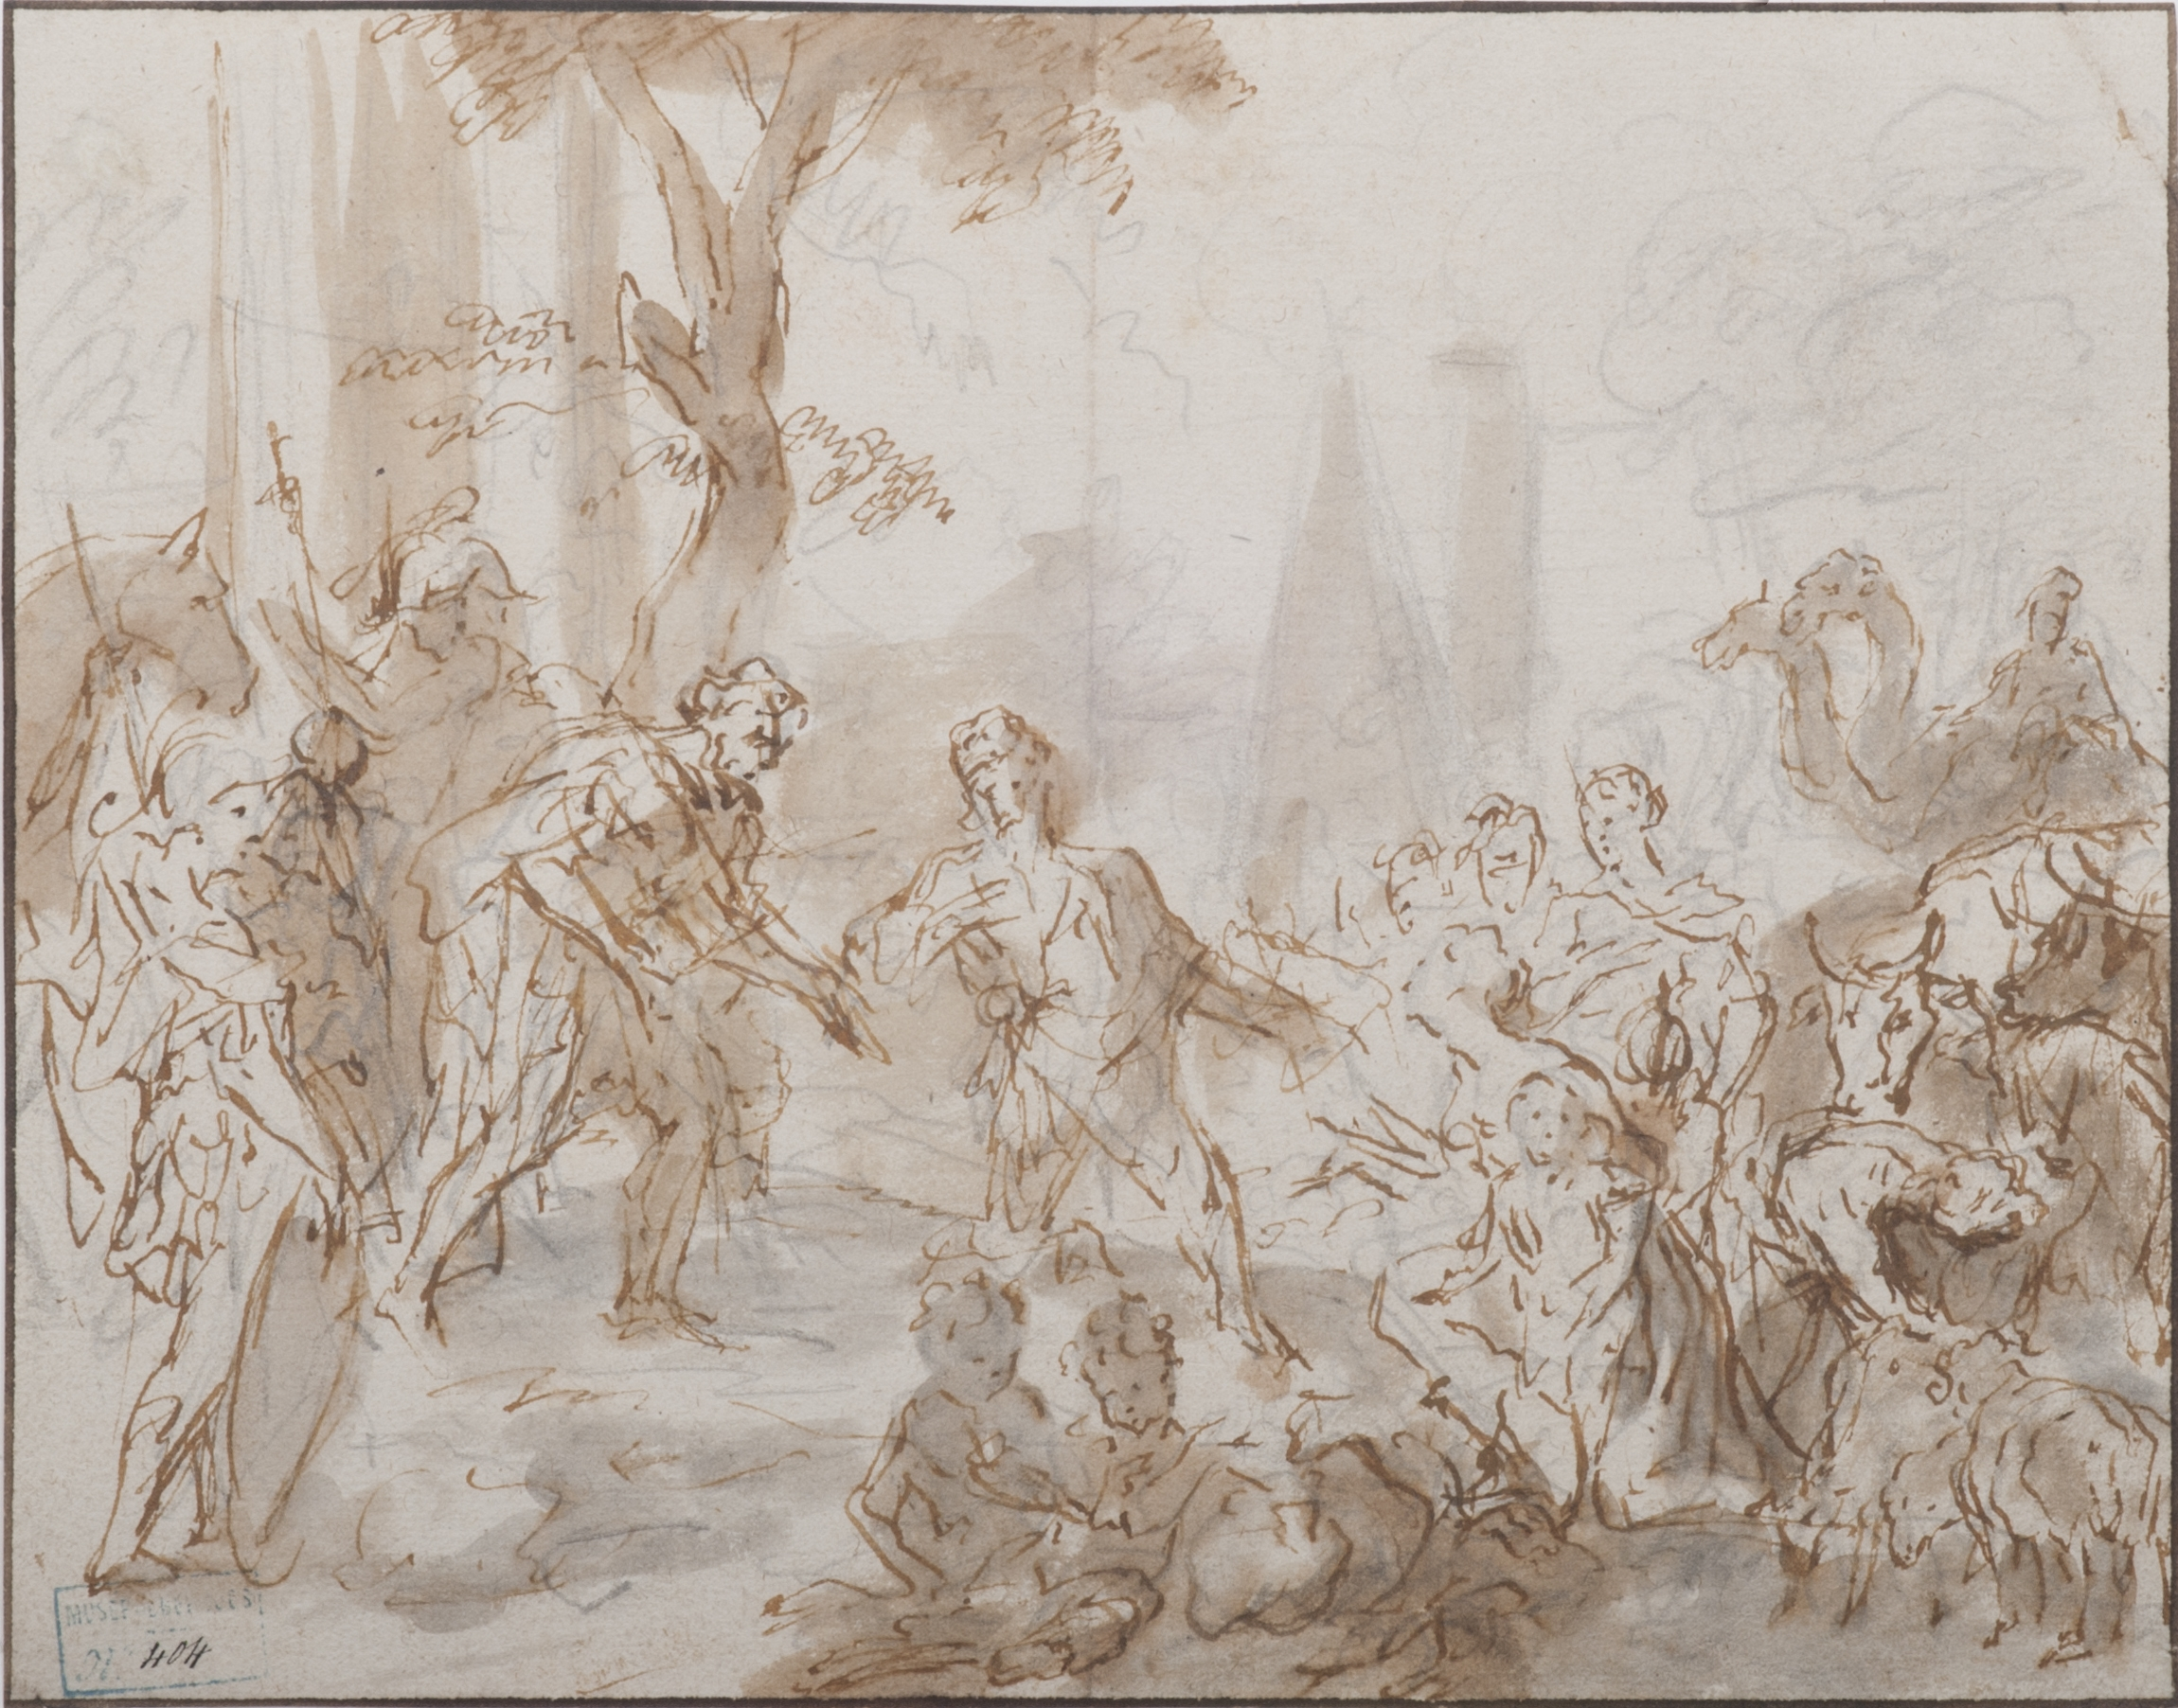 Caspar-Jacob van Opstal the Younger (1654-1717), The Meeting of Jacob and Esaü, pen and brown ink, grey wash, over graphite, 15 x 19 cm Bergues, Musée du Mont-de-Piété, inv. no. 2011.0.209.404 © Musée du Mont-de-Piété - Bergues / Photo Gilles Decavel